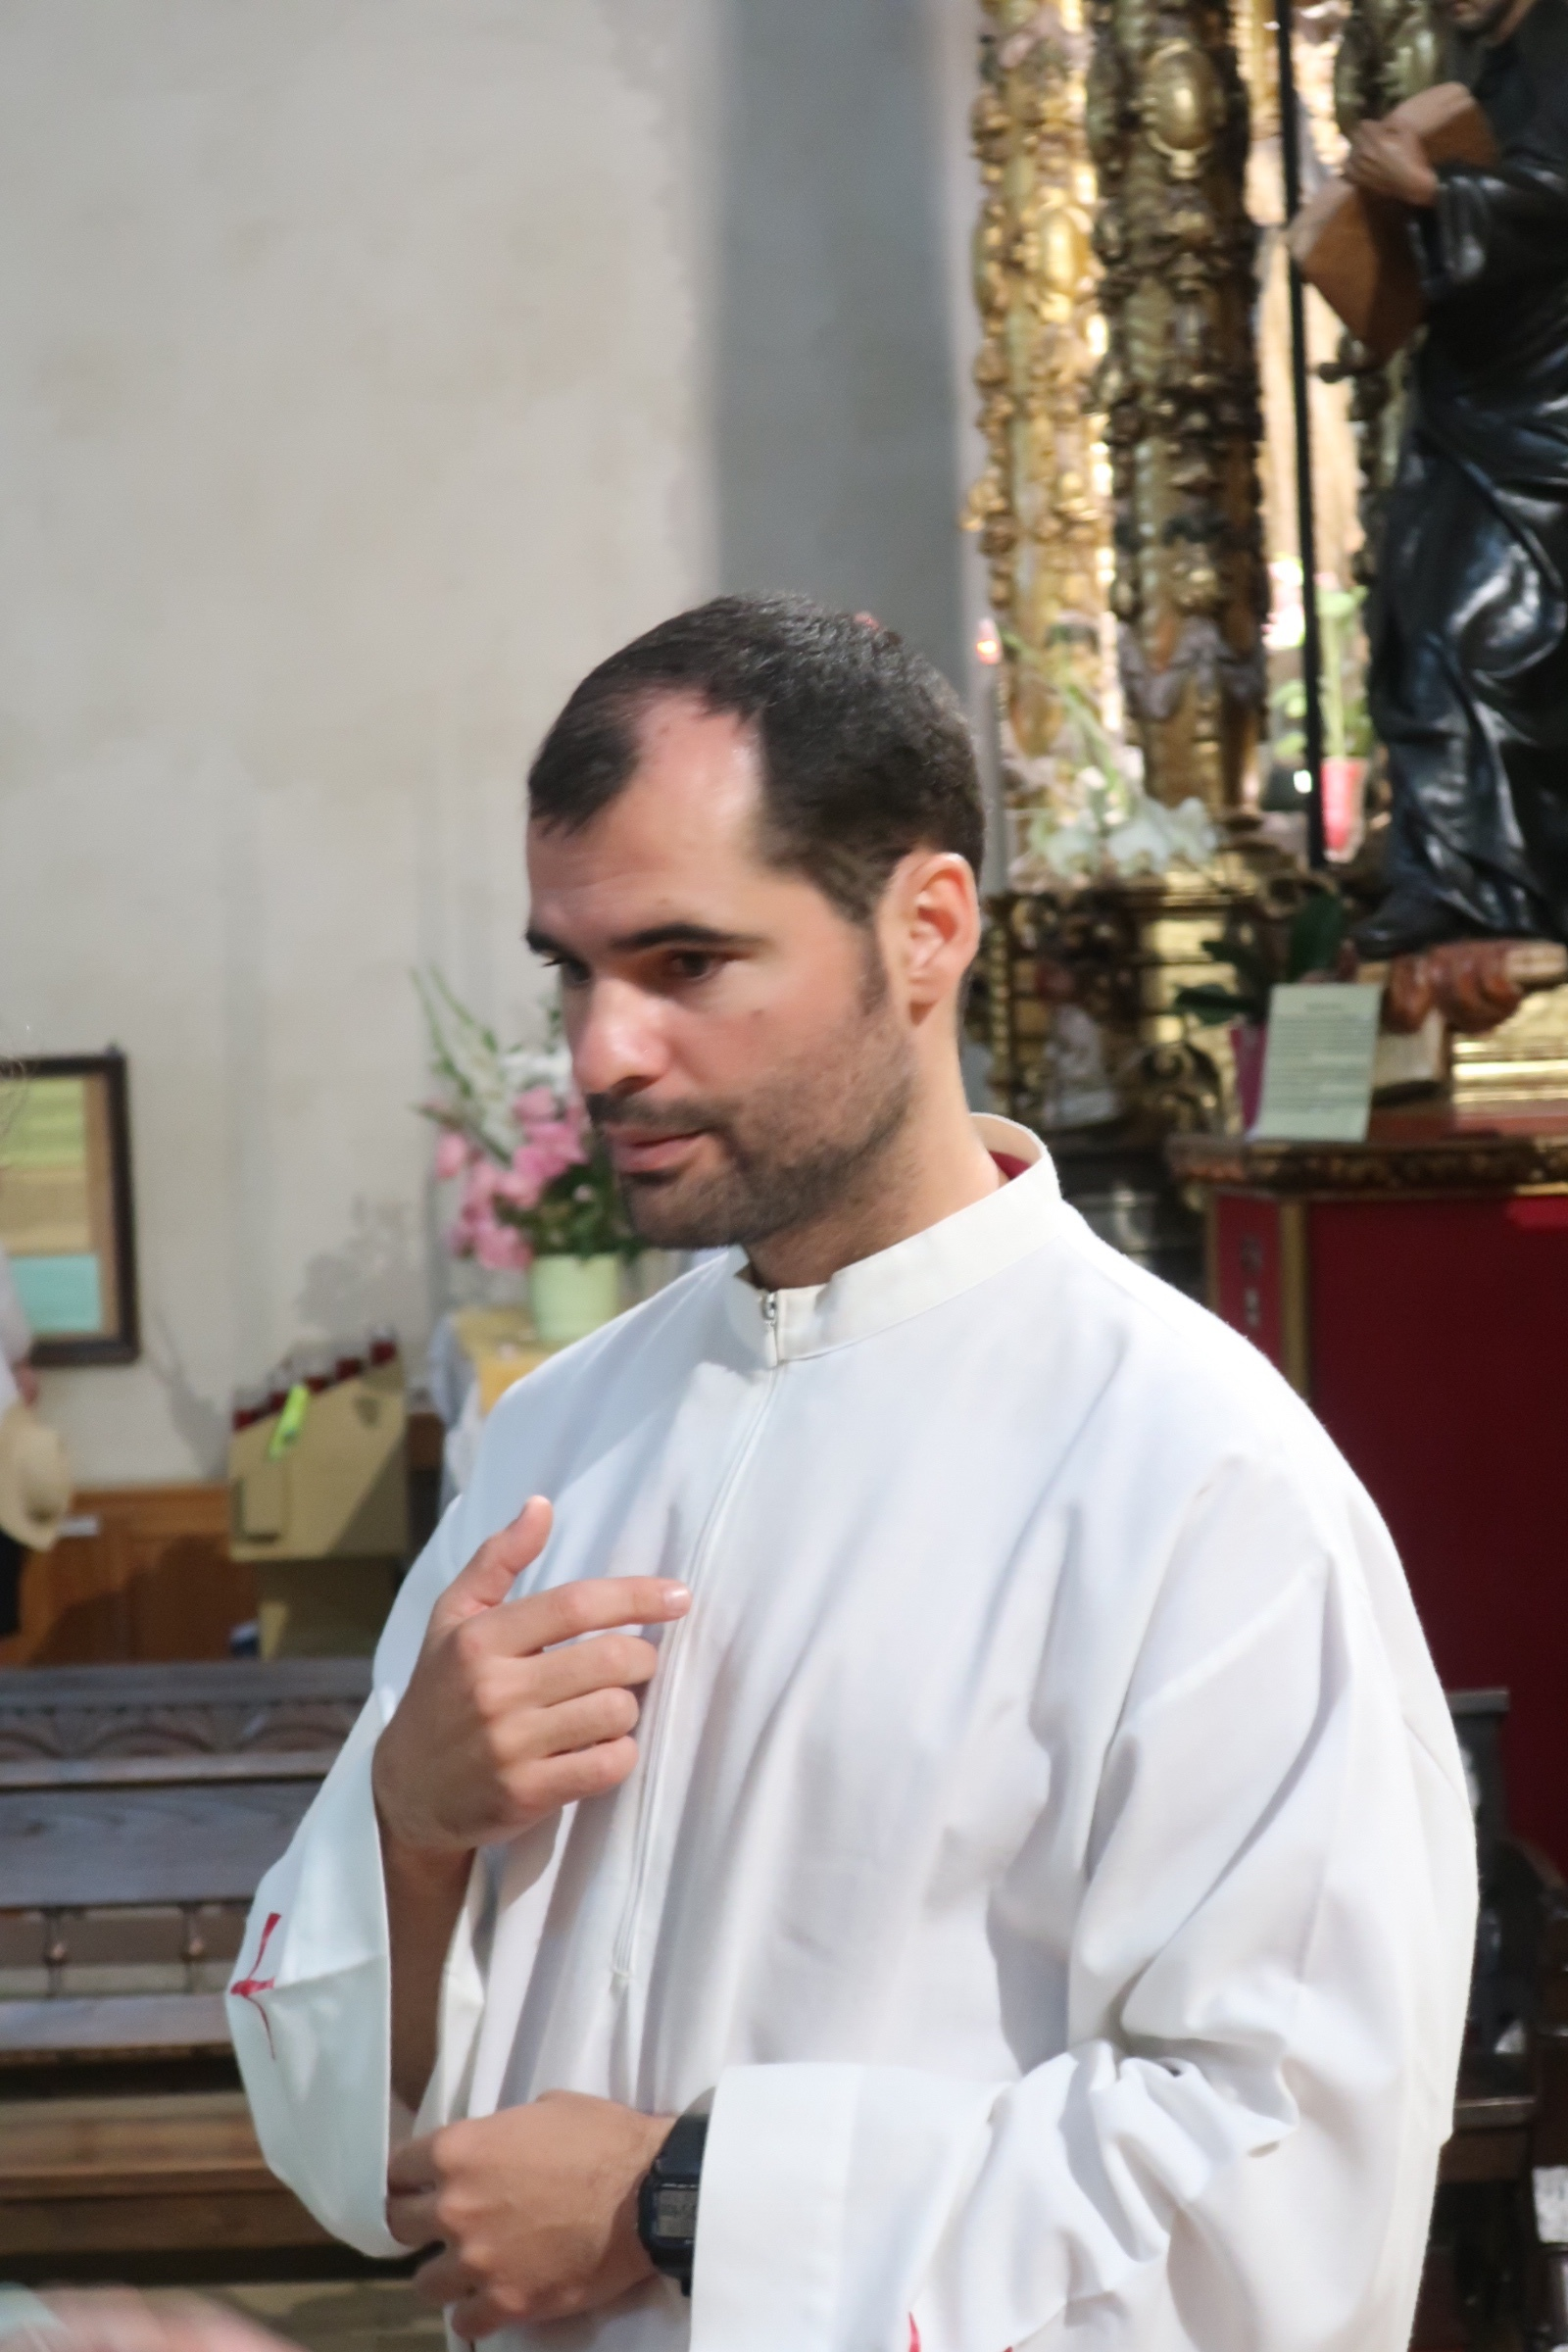 The recently ordained Jesuit priest